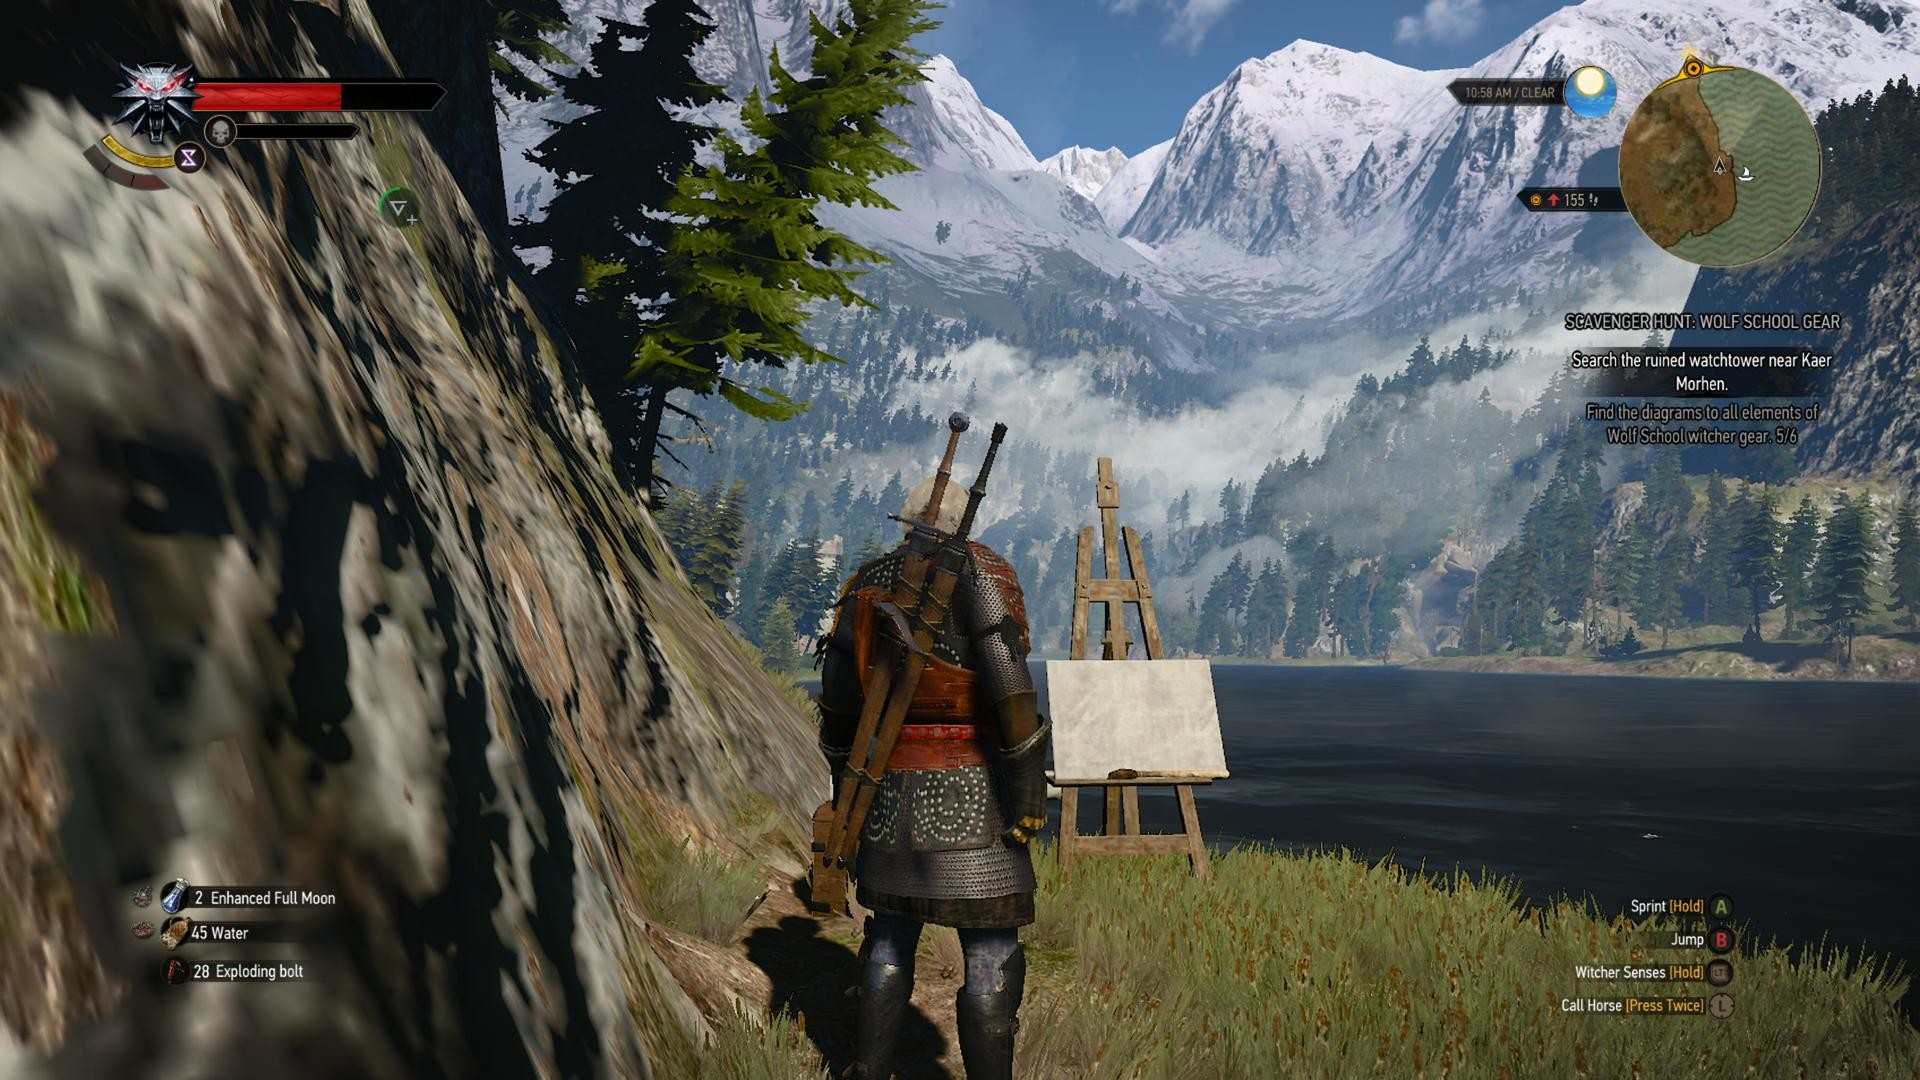 I found a Bob Ross Easter egg in the Witcher 3.